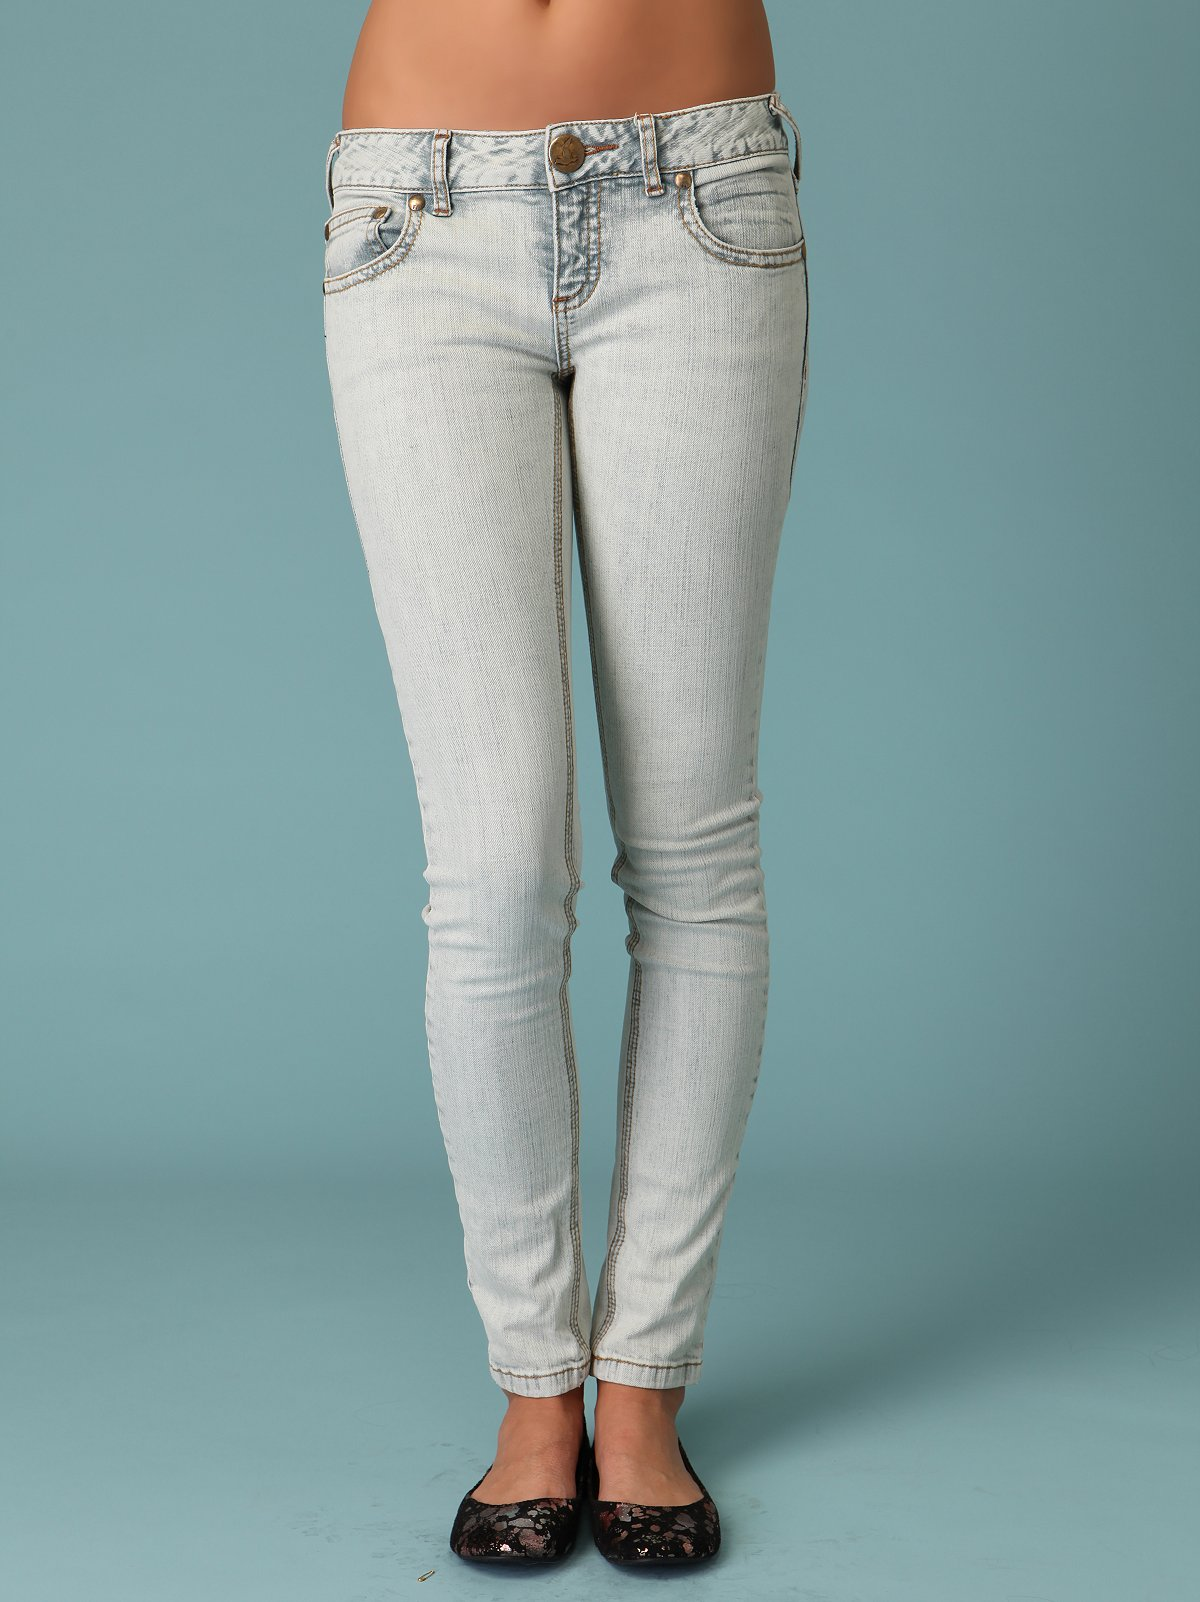 FP Super Skinny Acid Bleach Jeans